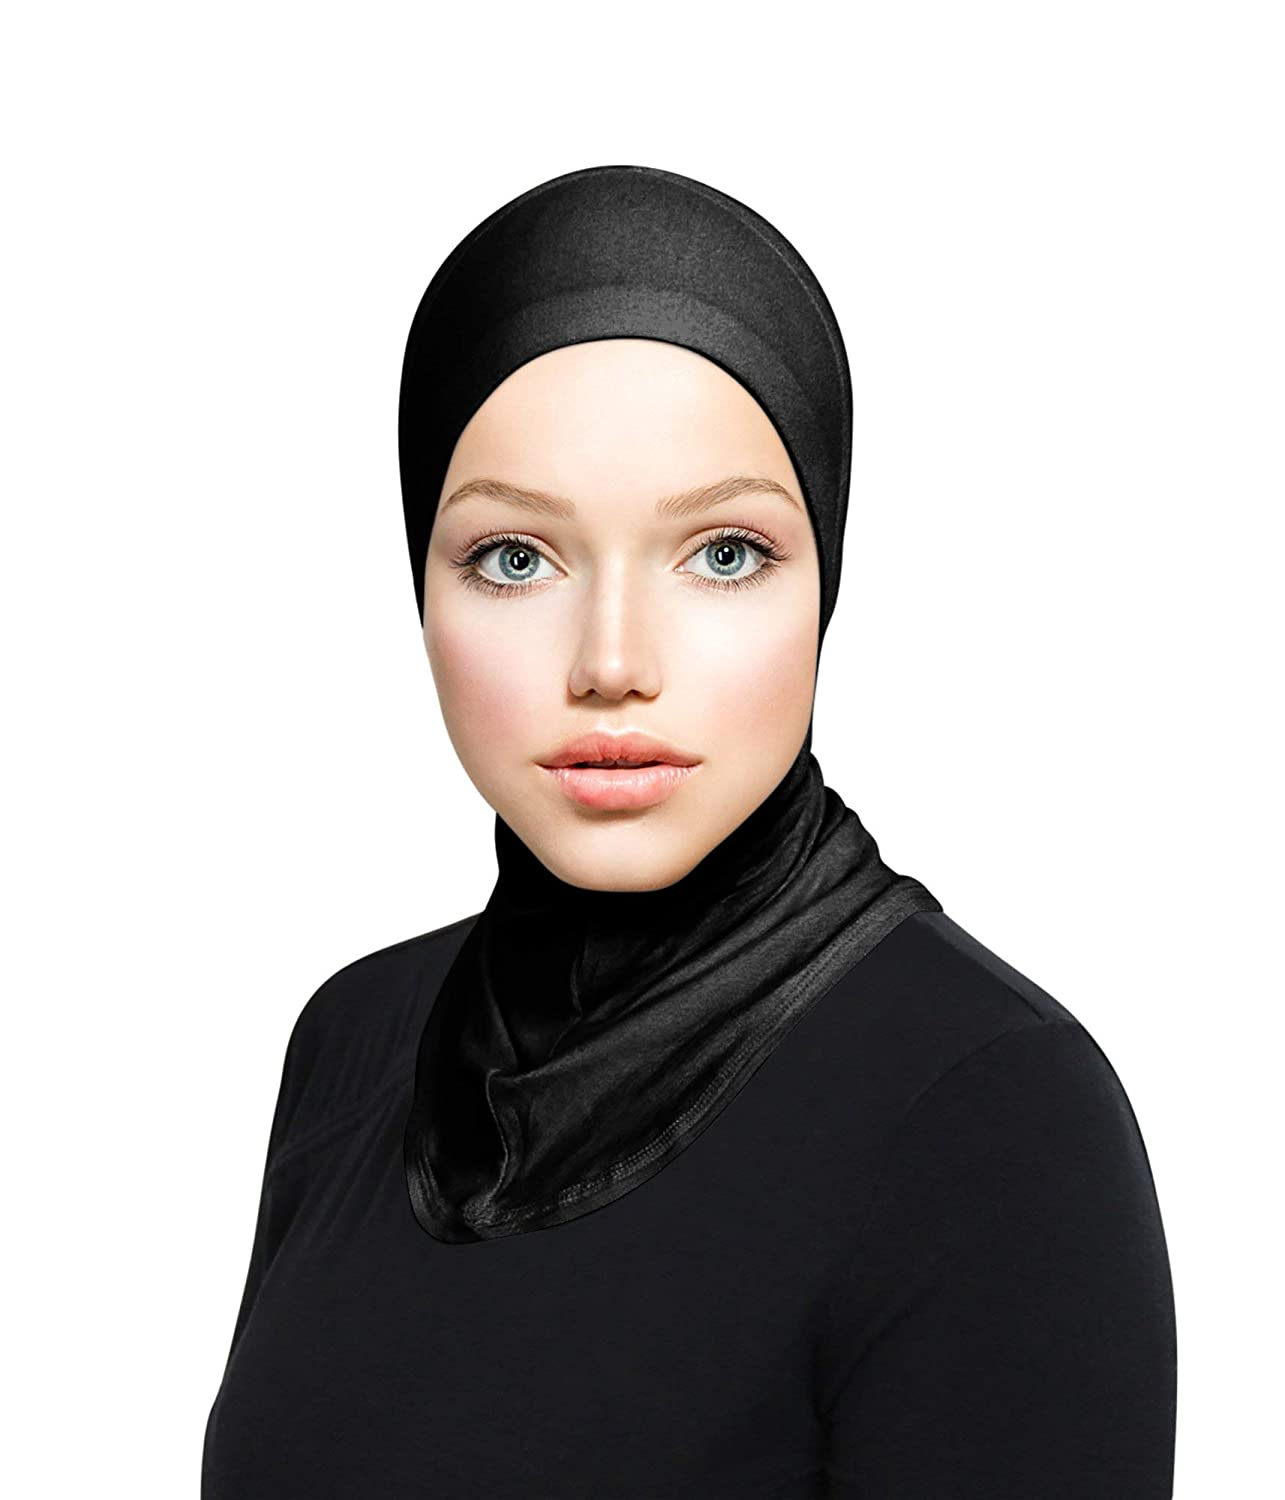 TheHijabStore.com Women's Ninja Hijab Cap Under Scarf Stretch Jersey Full Neck Coverage Hejab - Head Scarf Bonnet Accessories